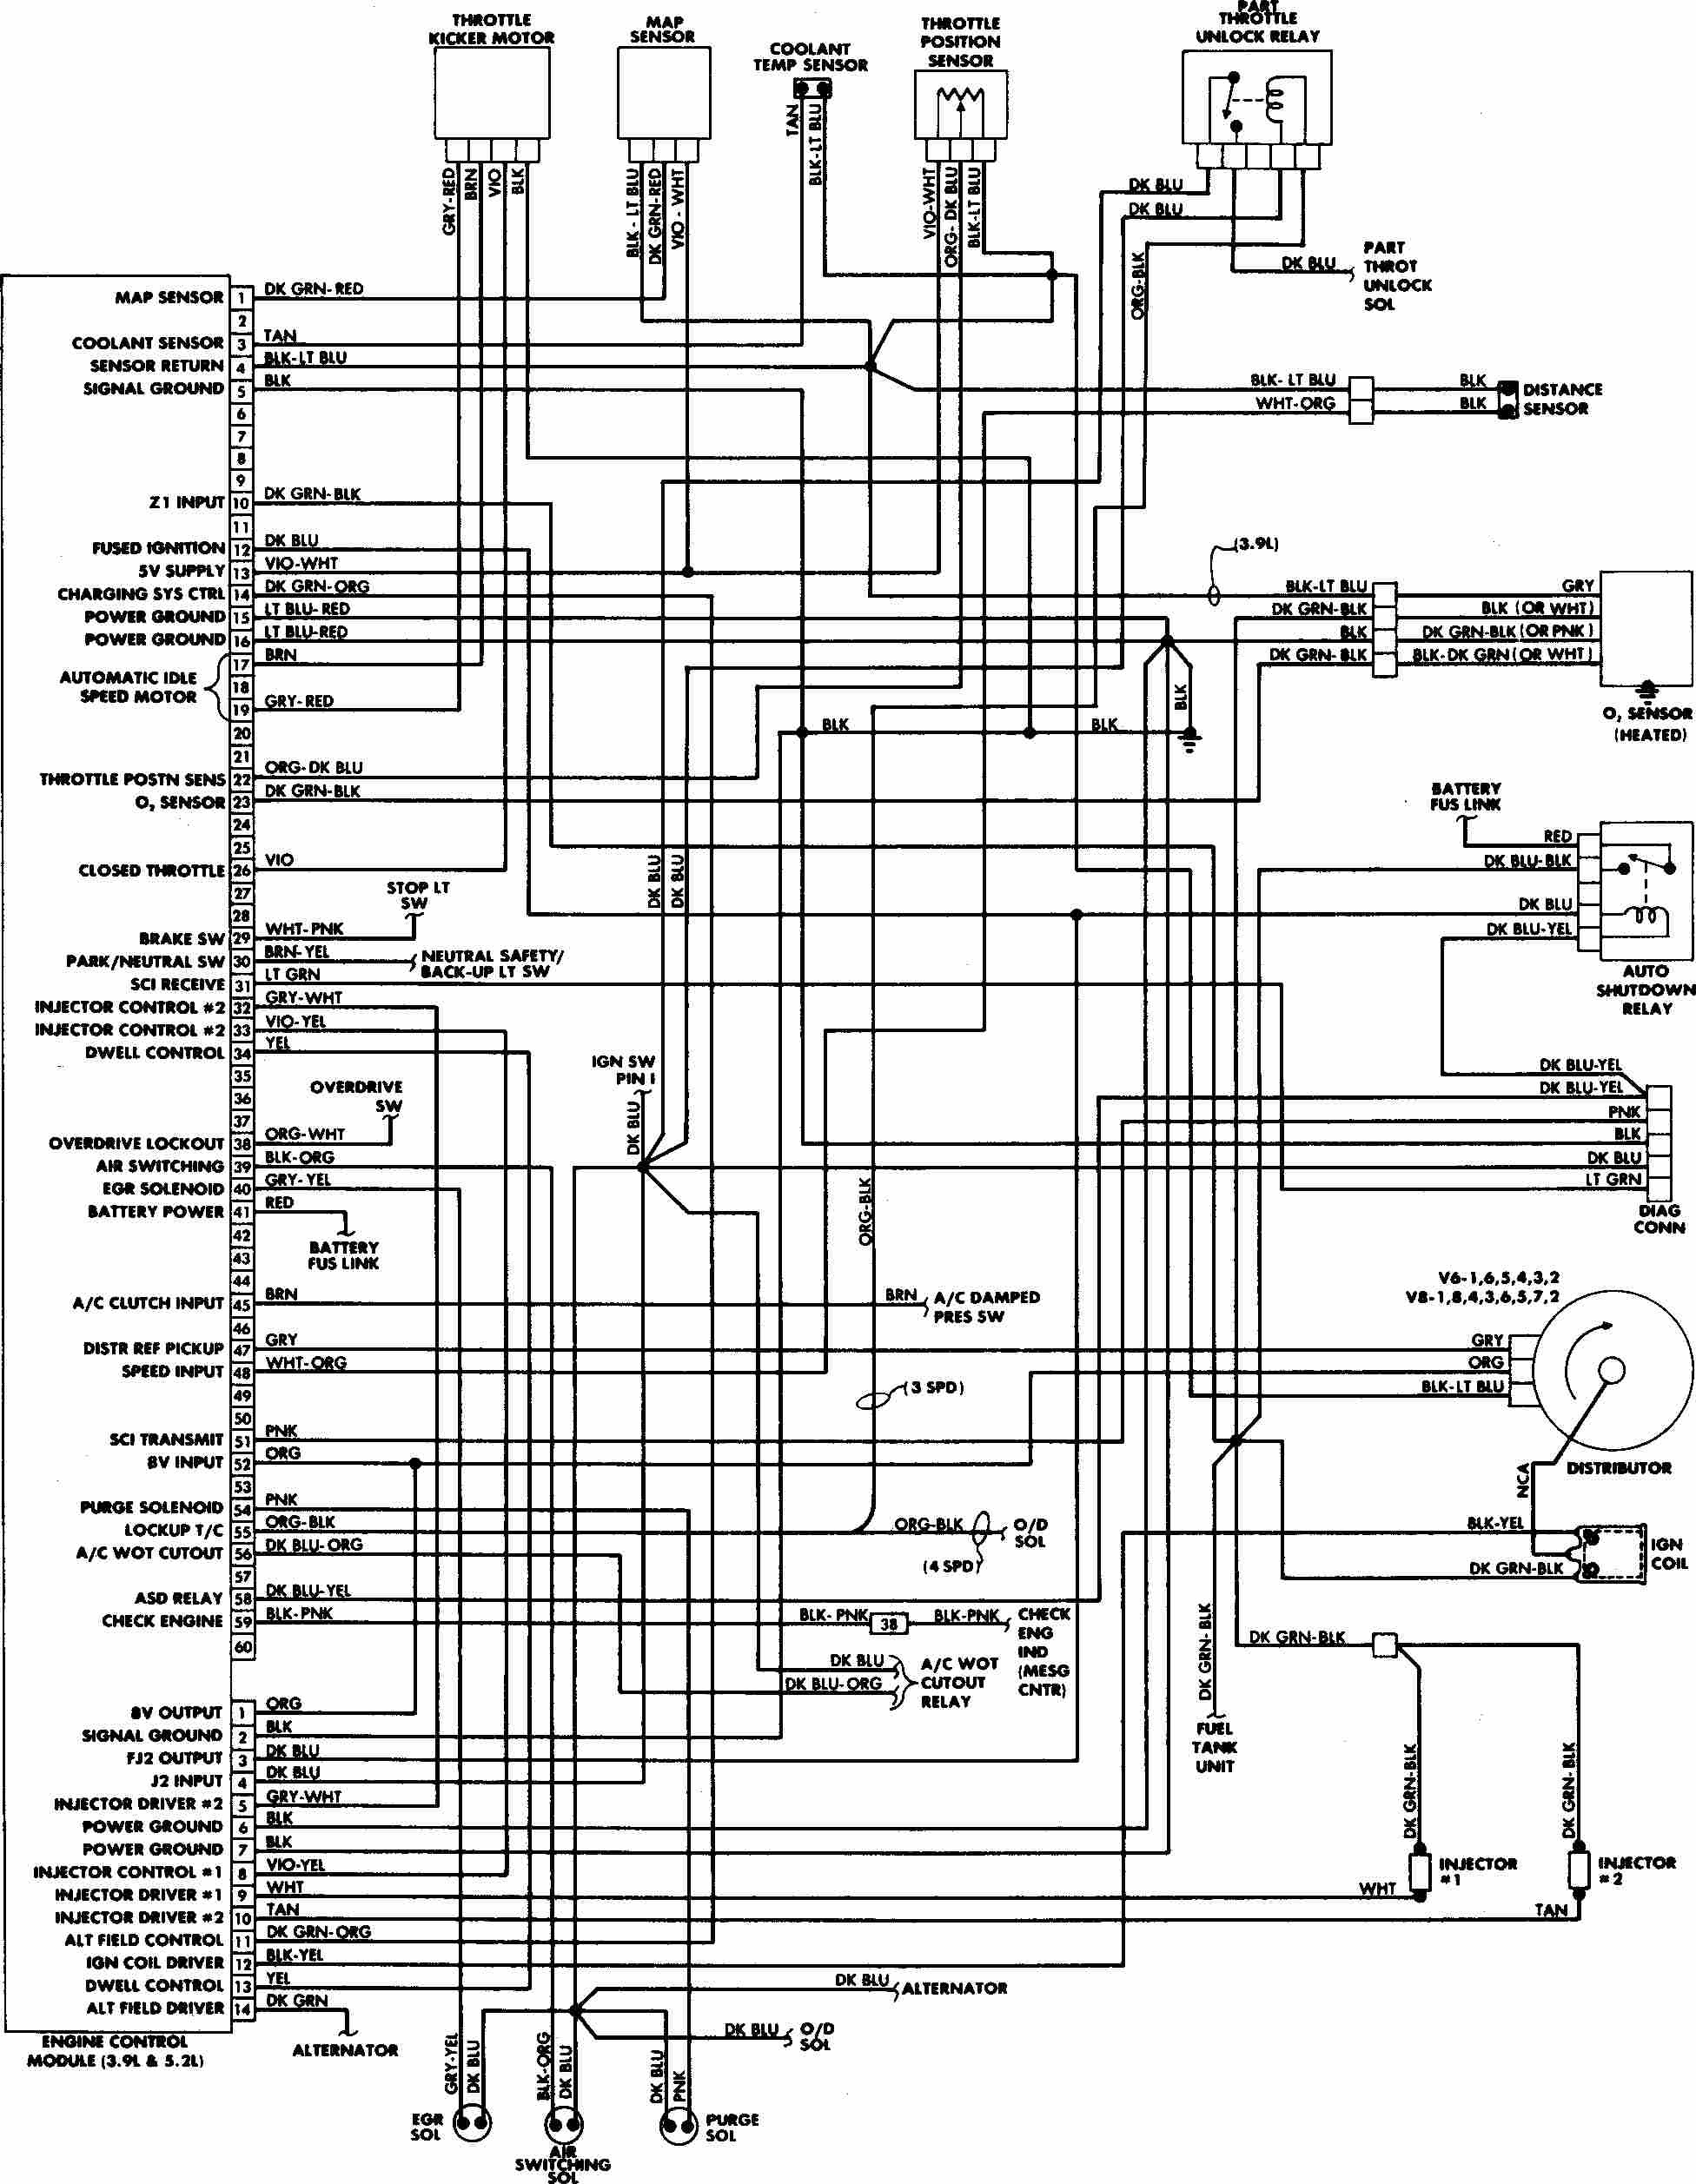 Chevy Topkick Wiring Diagram